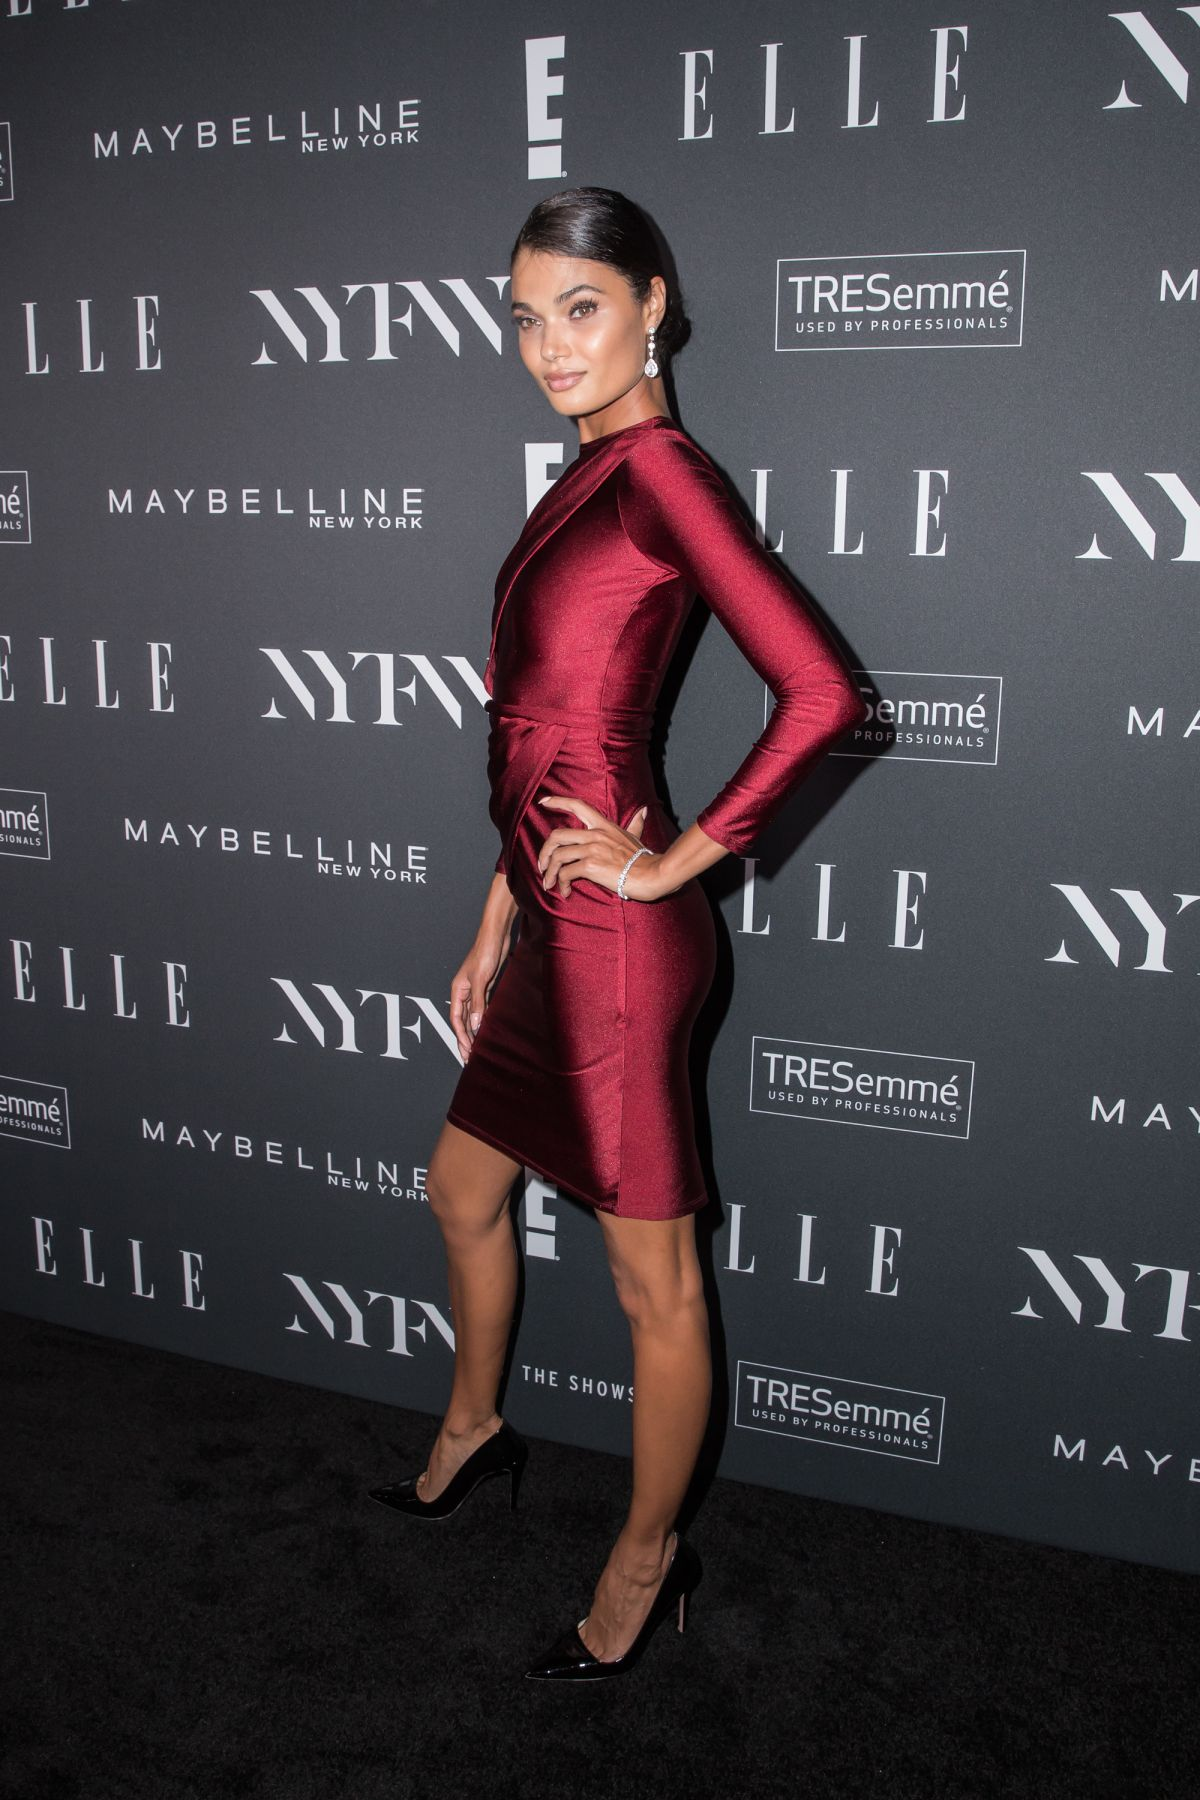 daniela-braga-at-e-elle-and-img-party-in-new-york-09-05-2018-2.jpg